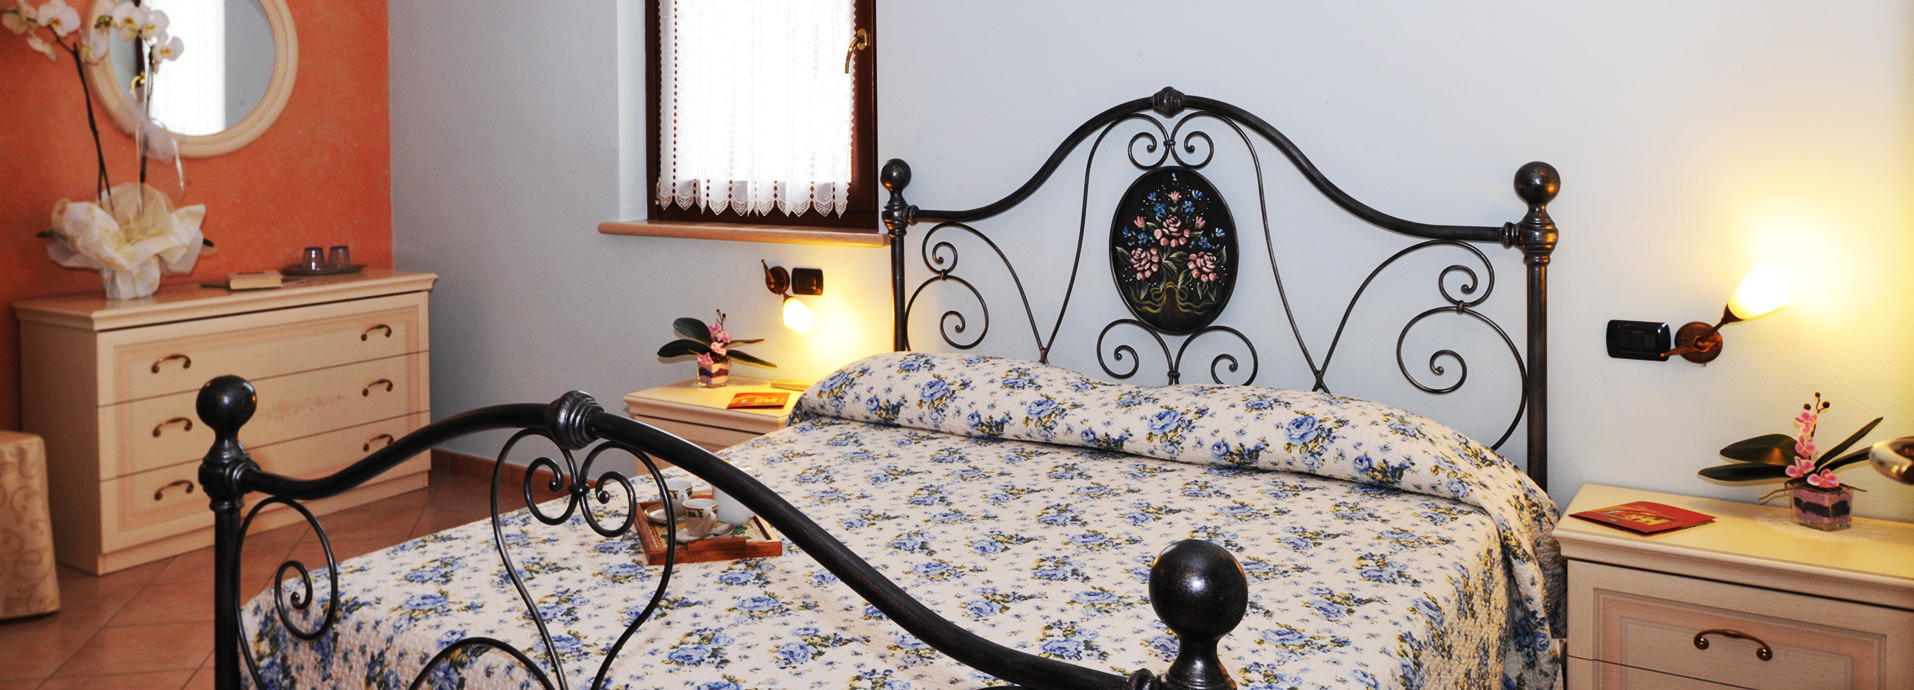 lake garda rooms